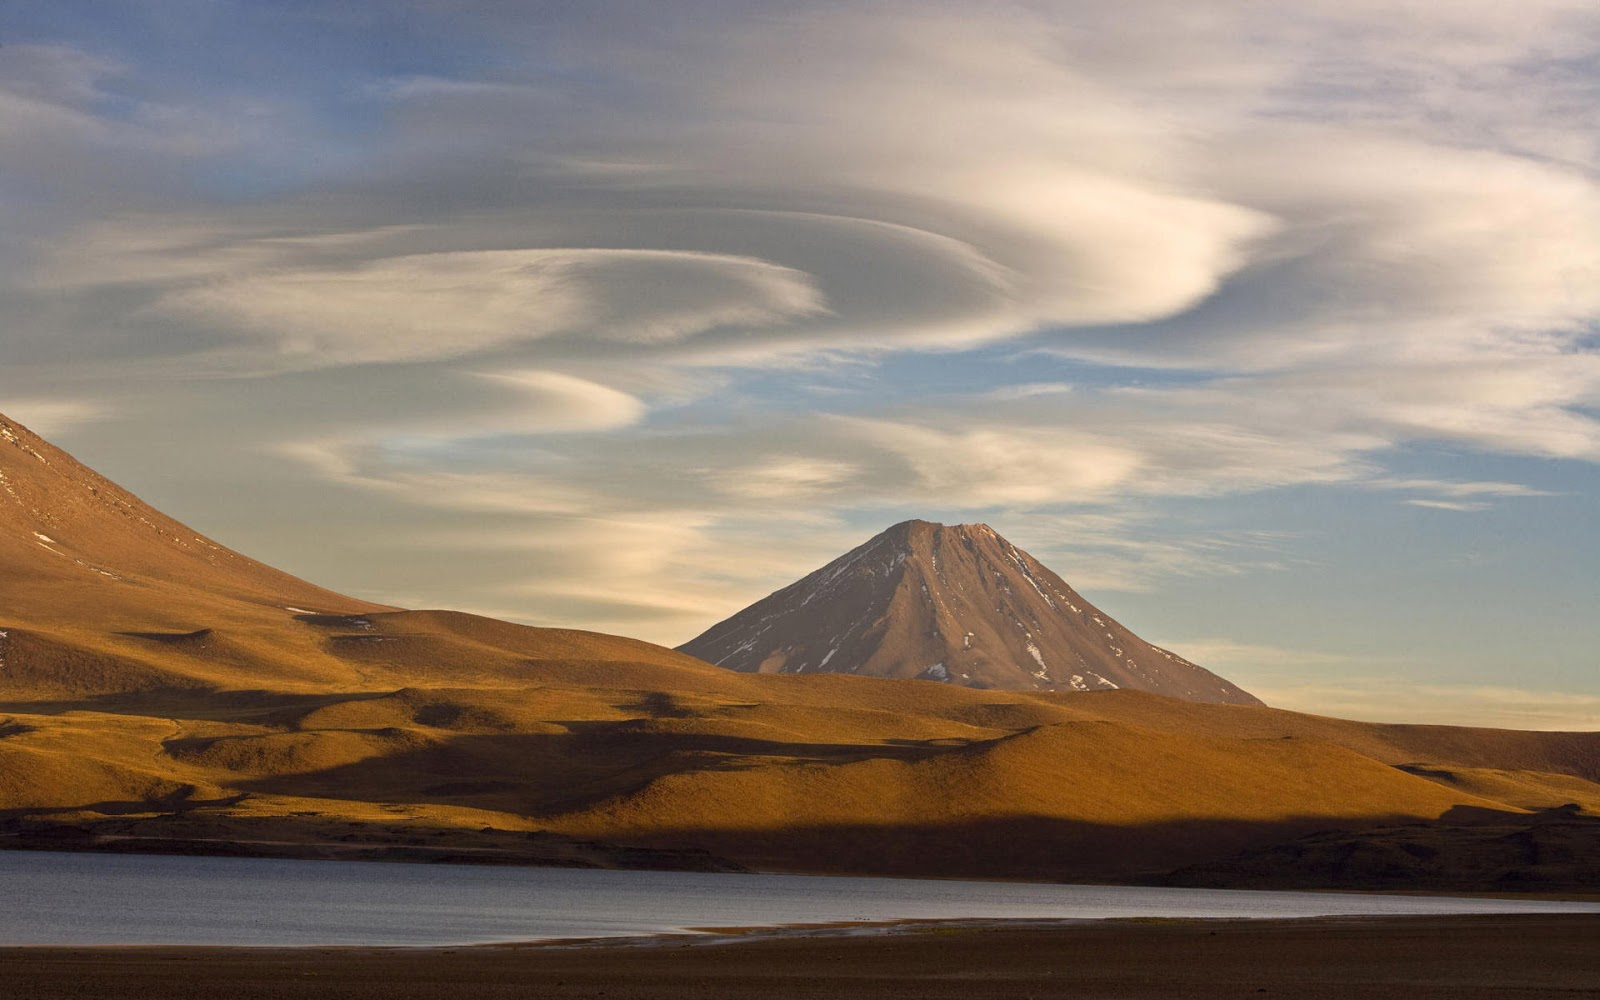 Cute Baby Flying Kiss Wallpaper Volcanic Mountain In Chile Mystery Wallpaper